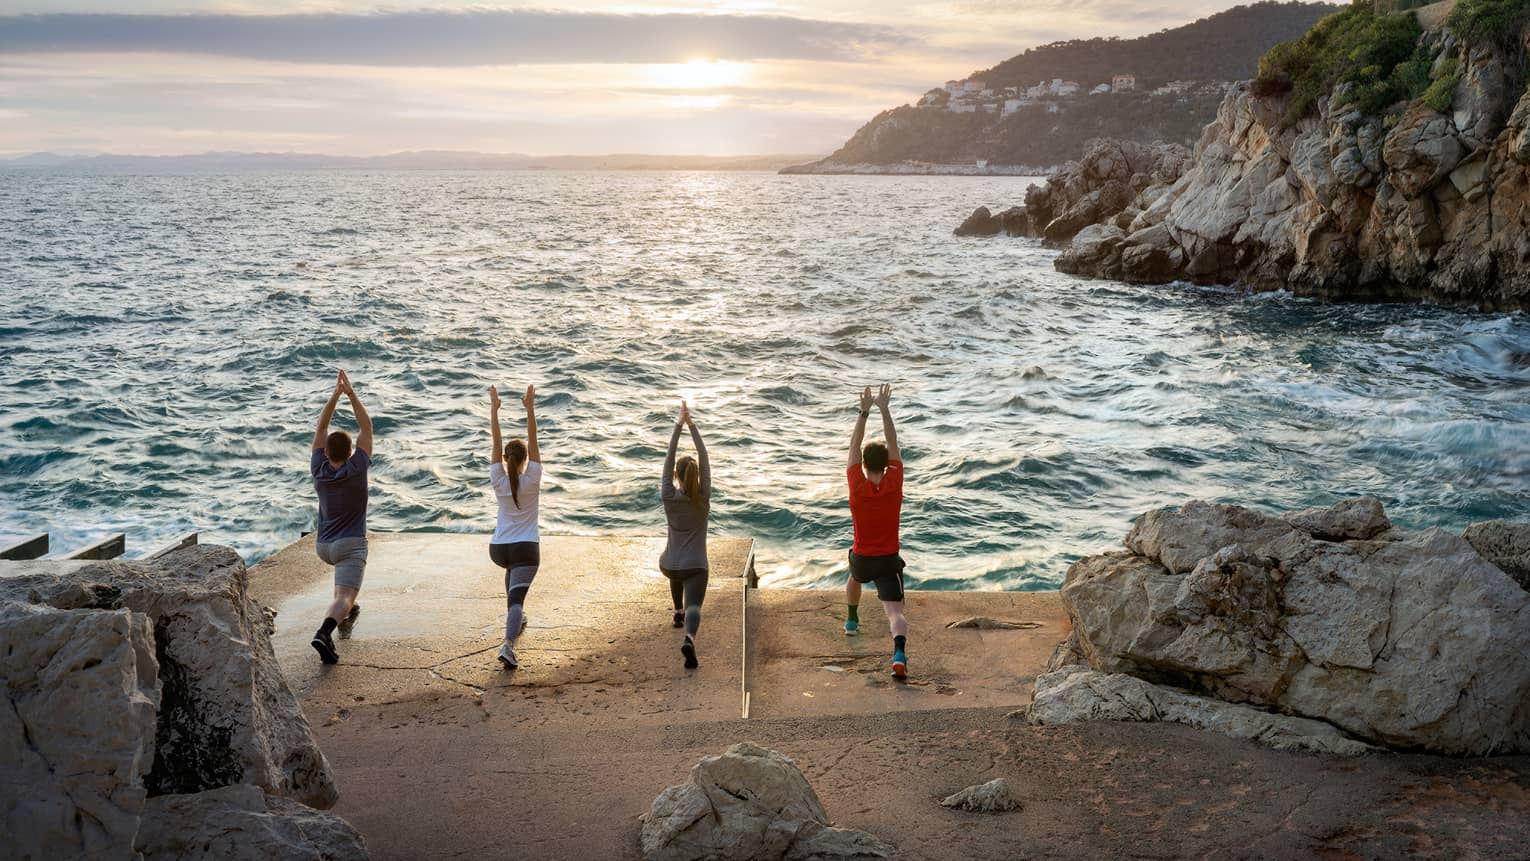 Rear view of four people doing yoga on sandy shore next to sea, rocky cliffs on right